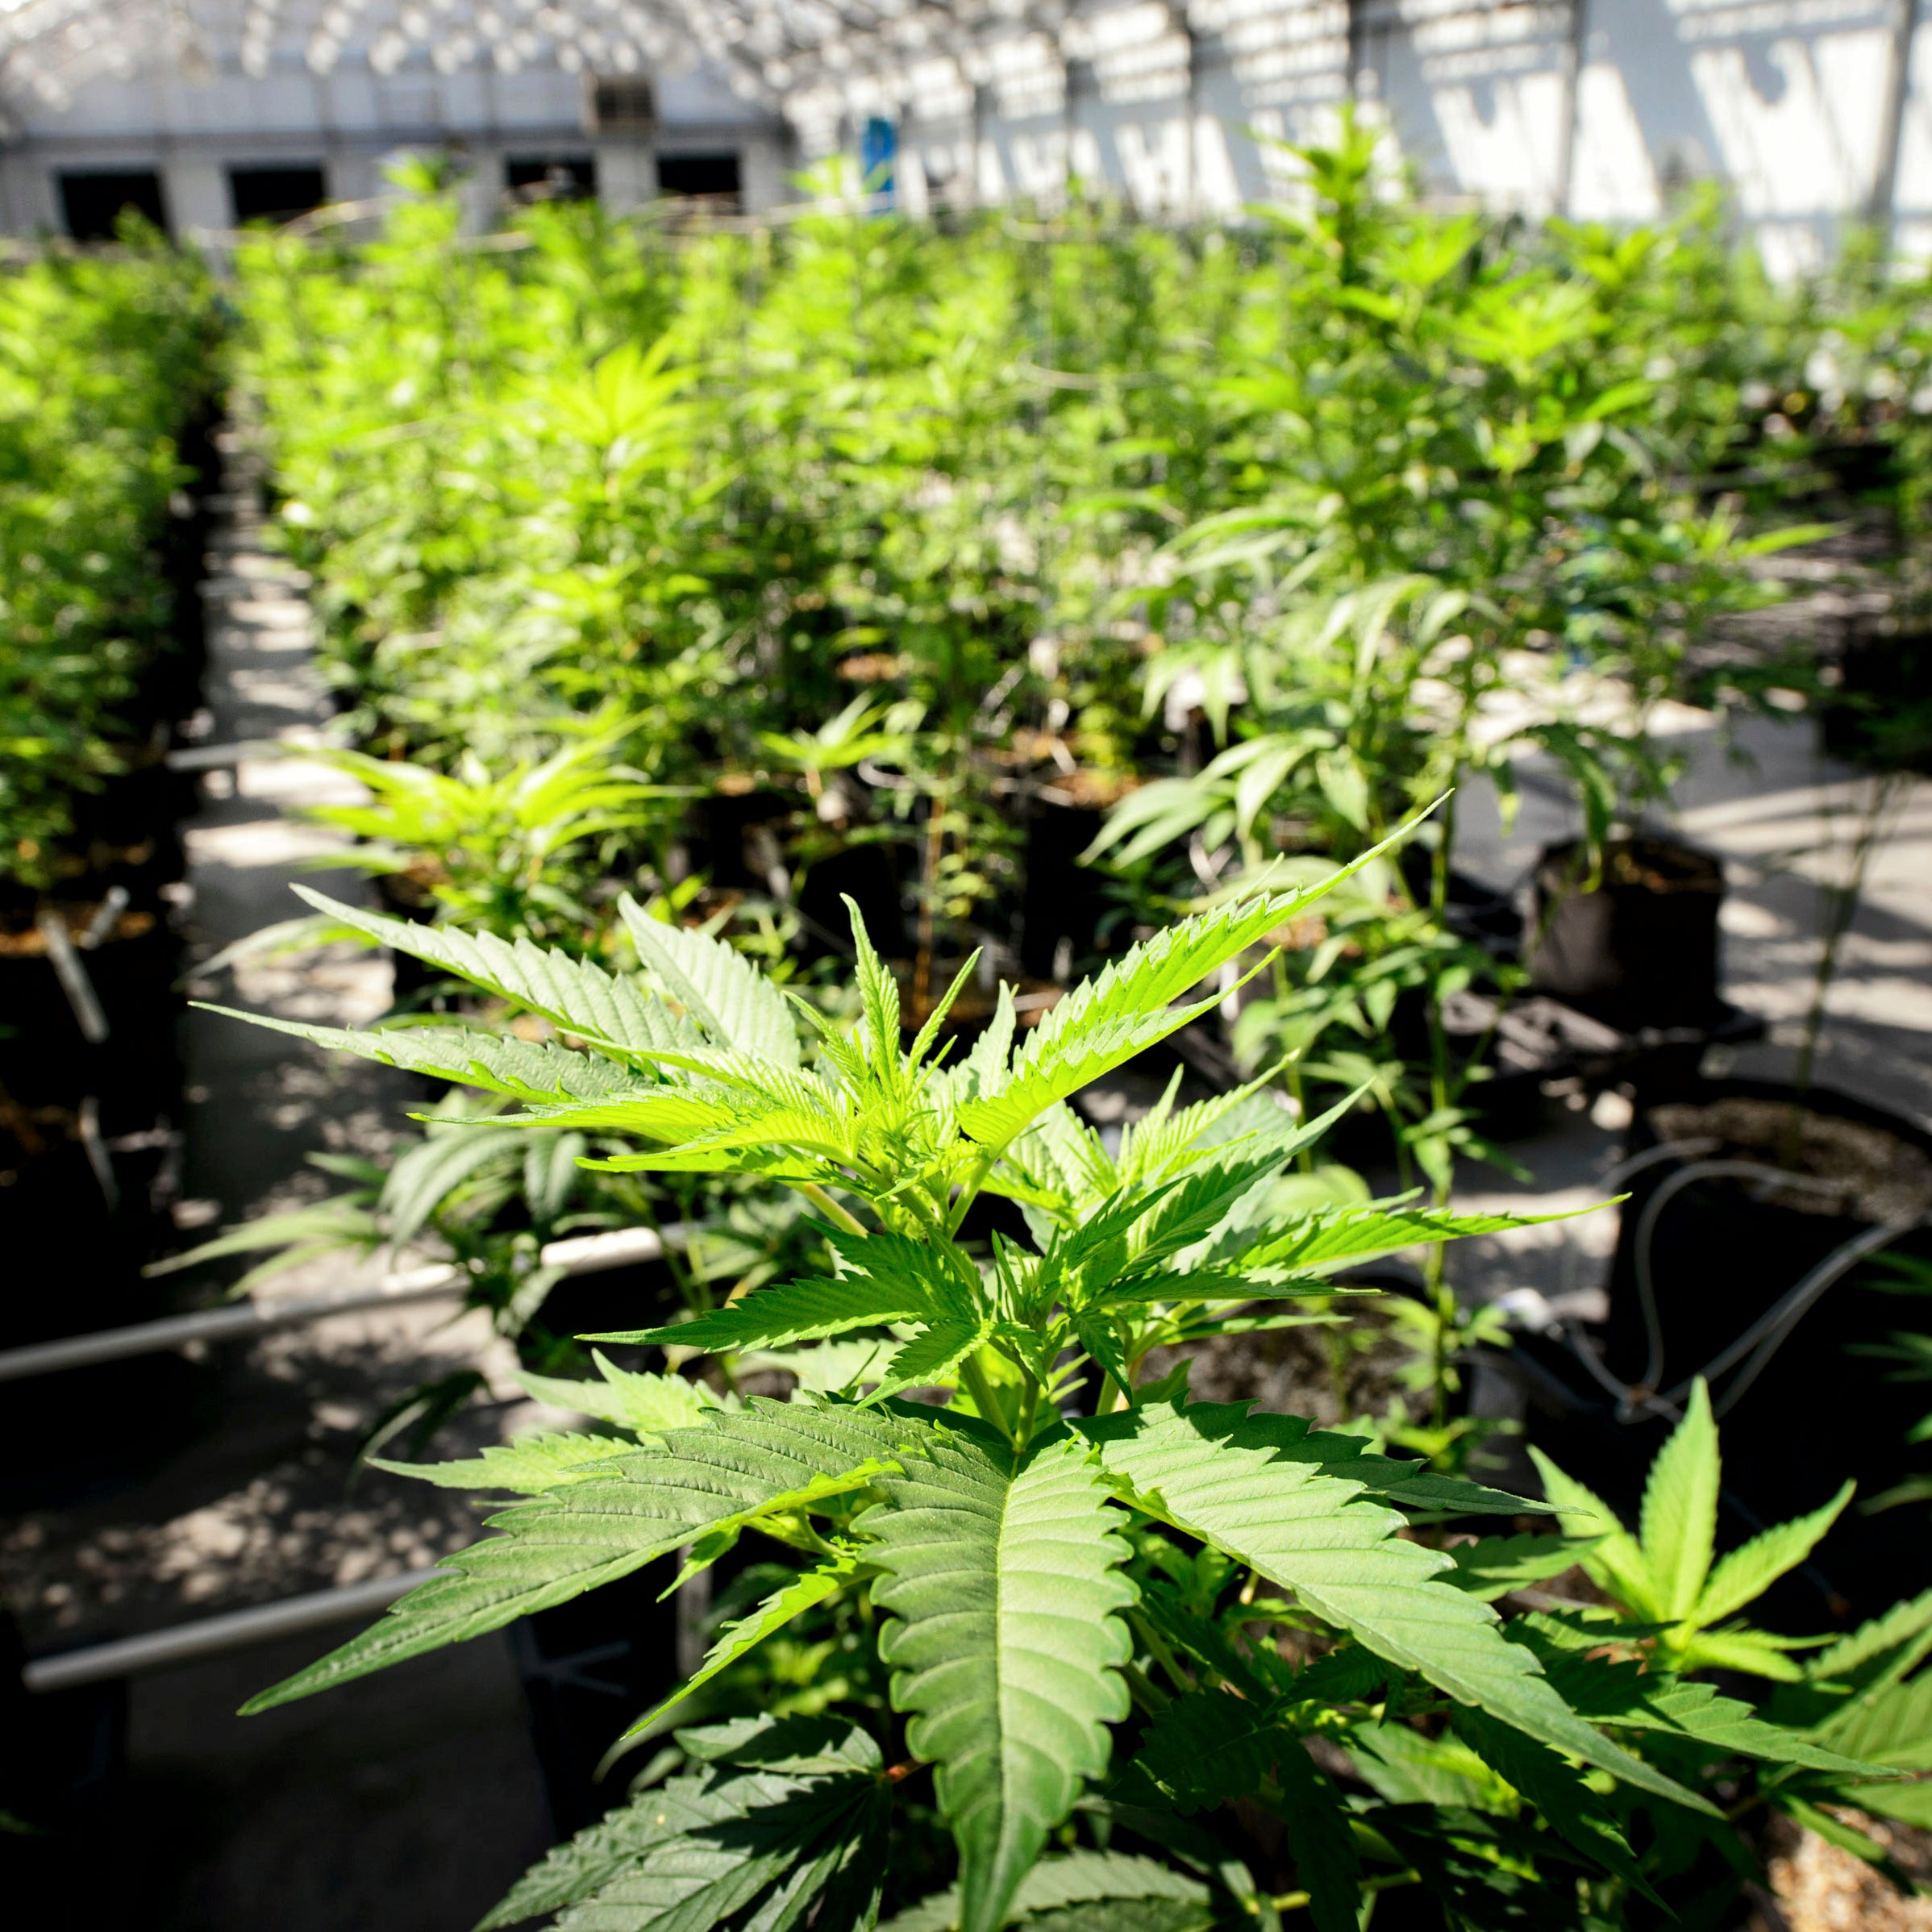 Social equity a key issue in cannabis legalization movement